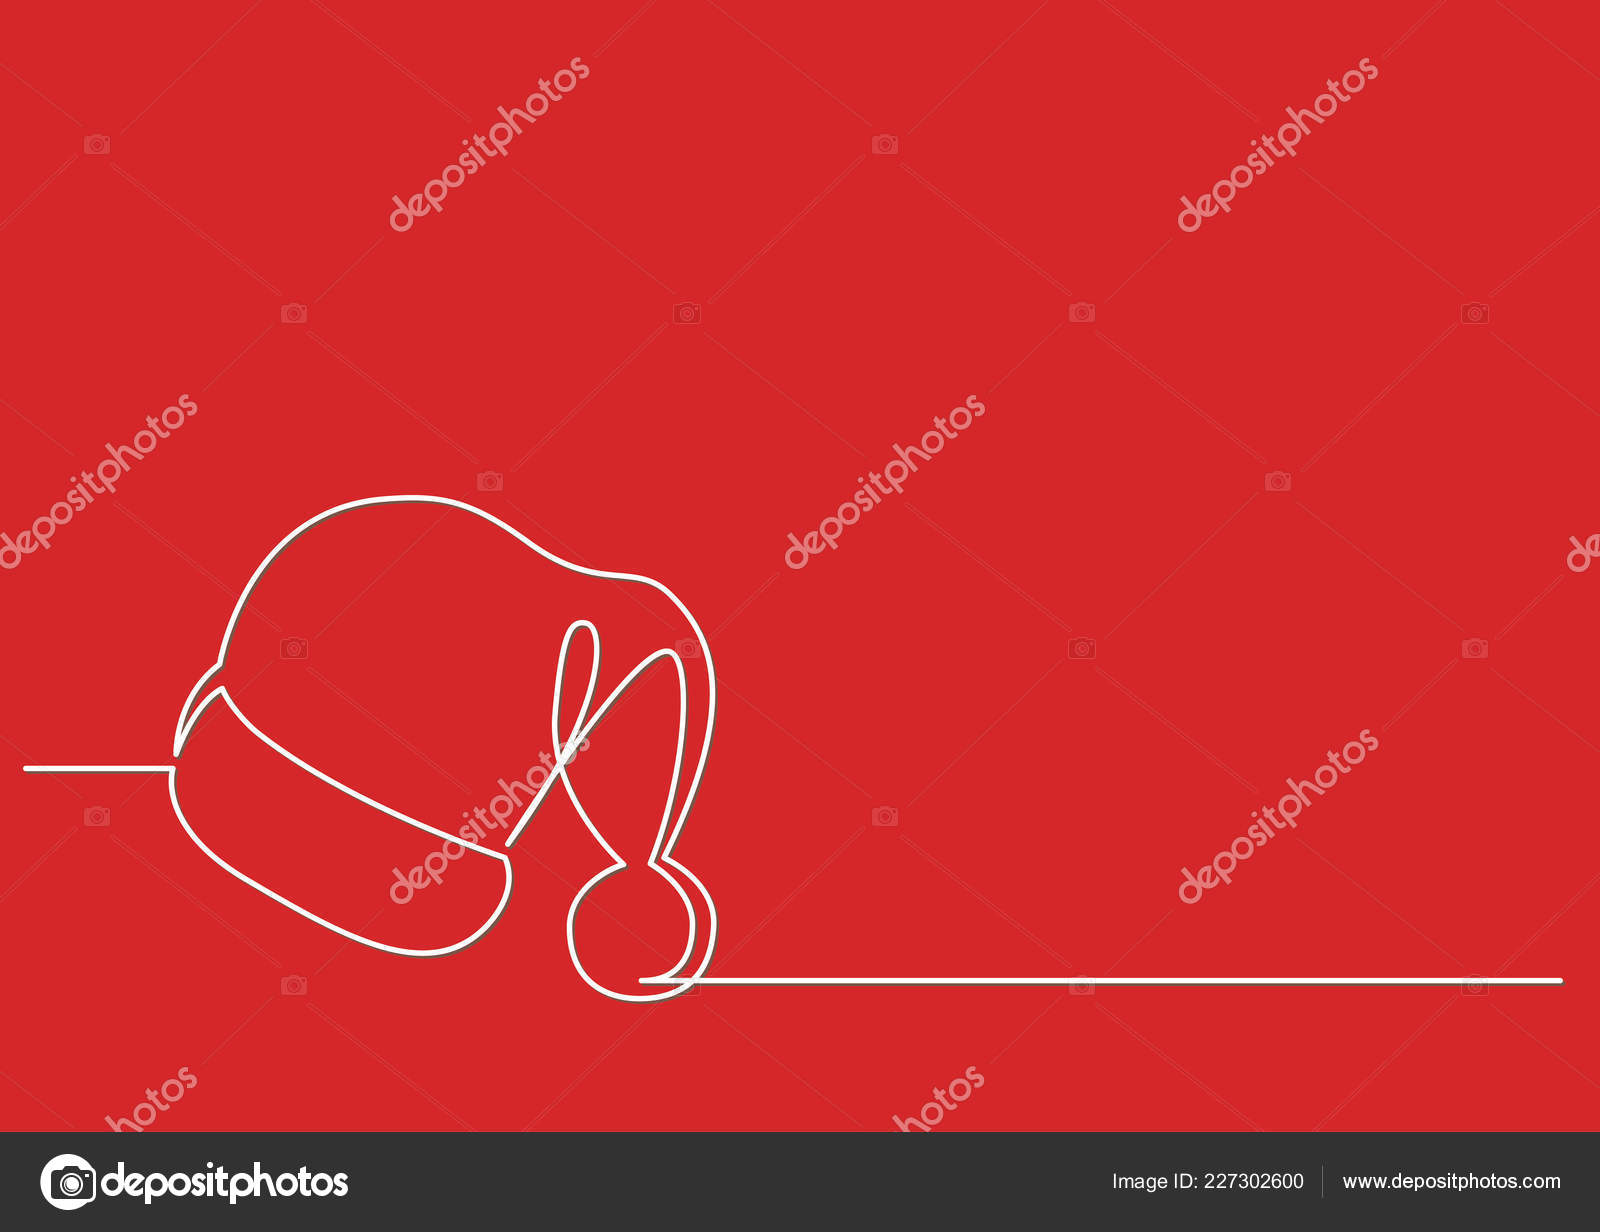 Continuous Line Drawing Santa Claus Hat Stock Vector